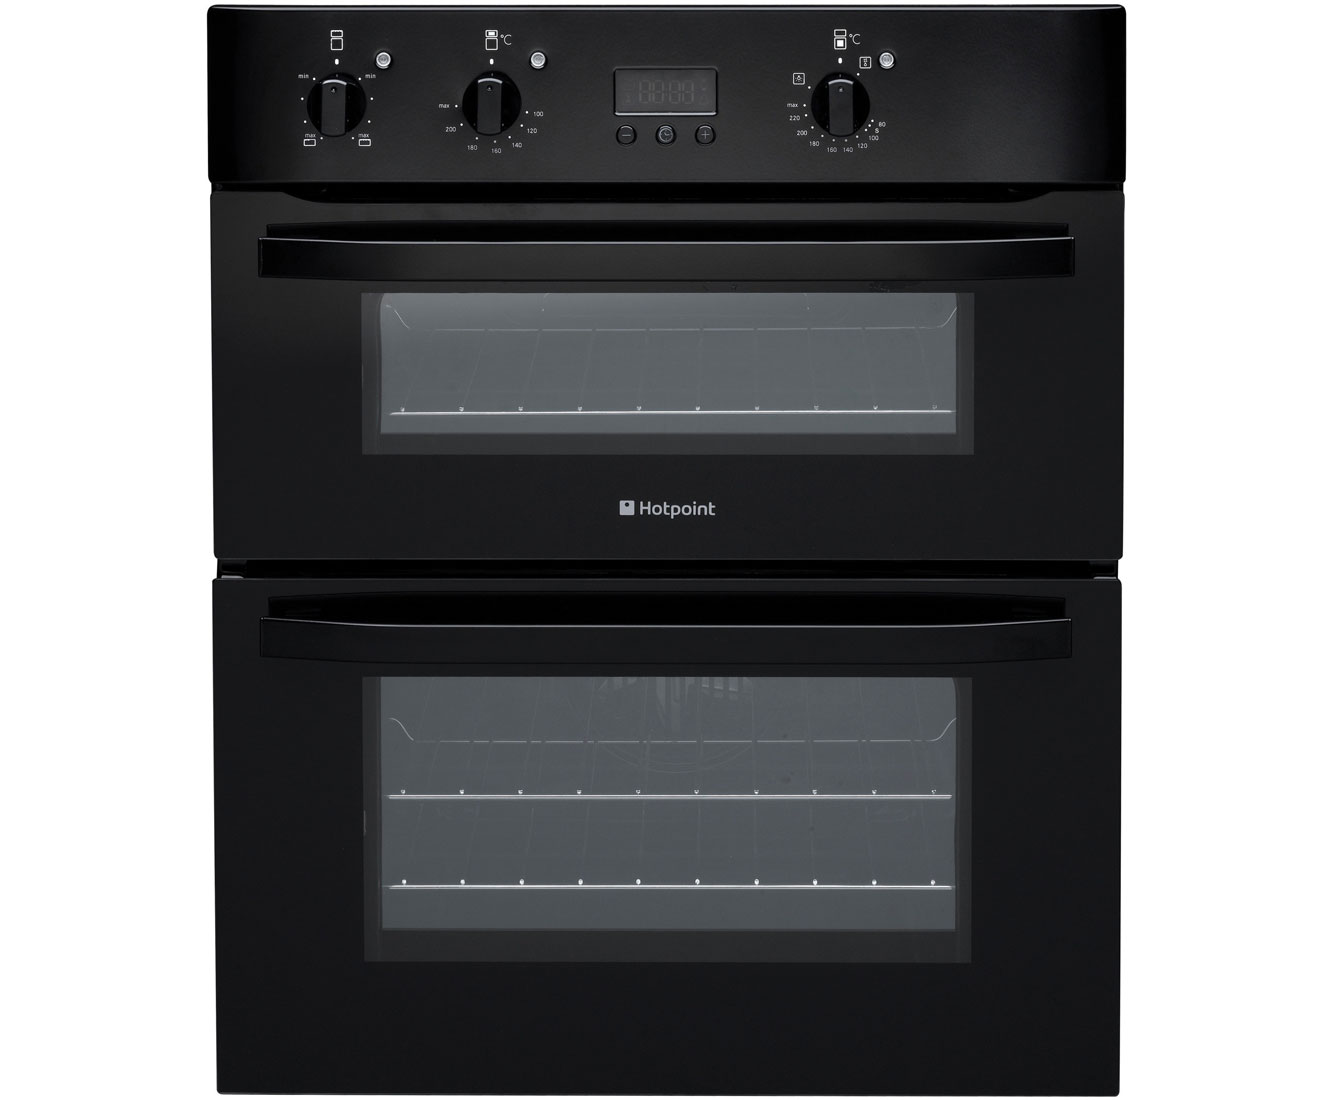 Hotpoint Newstyle UH53KS Built Under Double Oven in Black